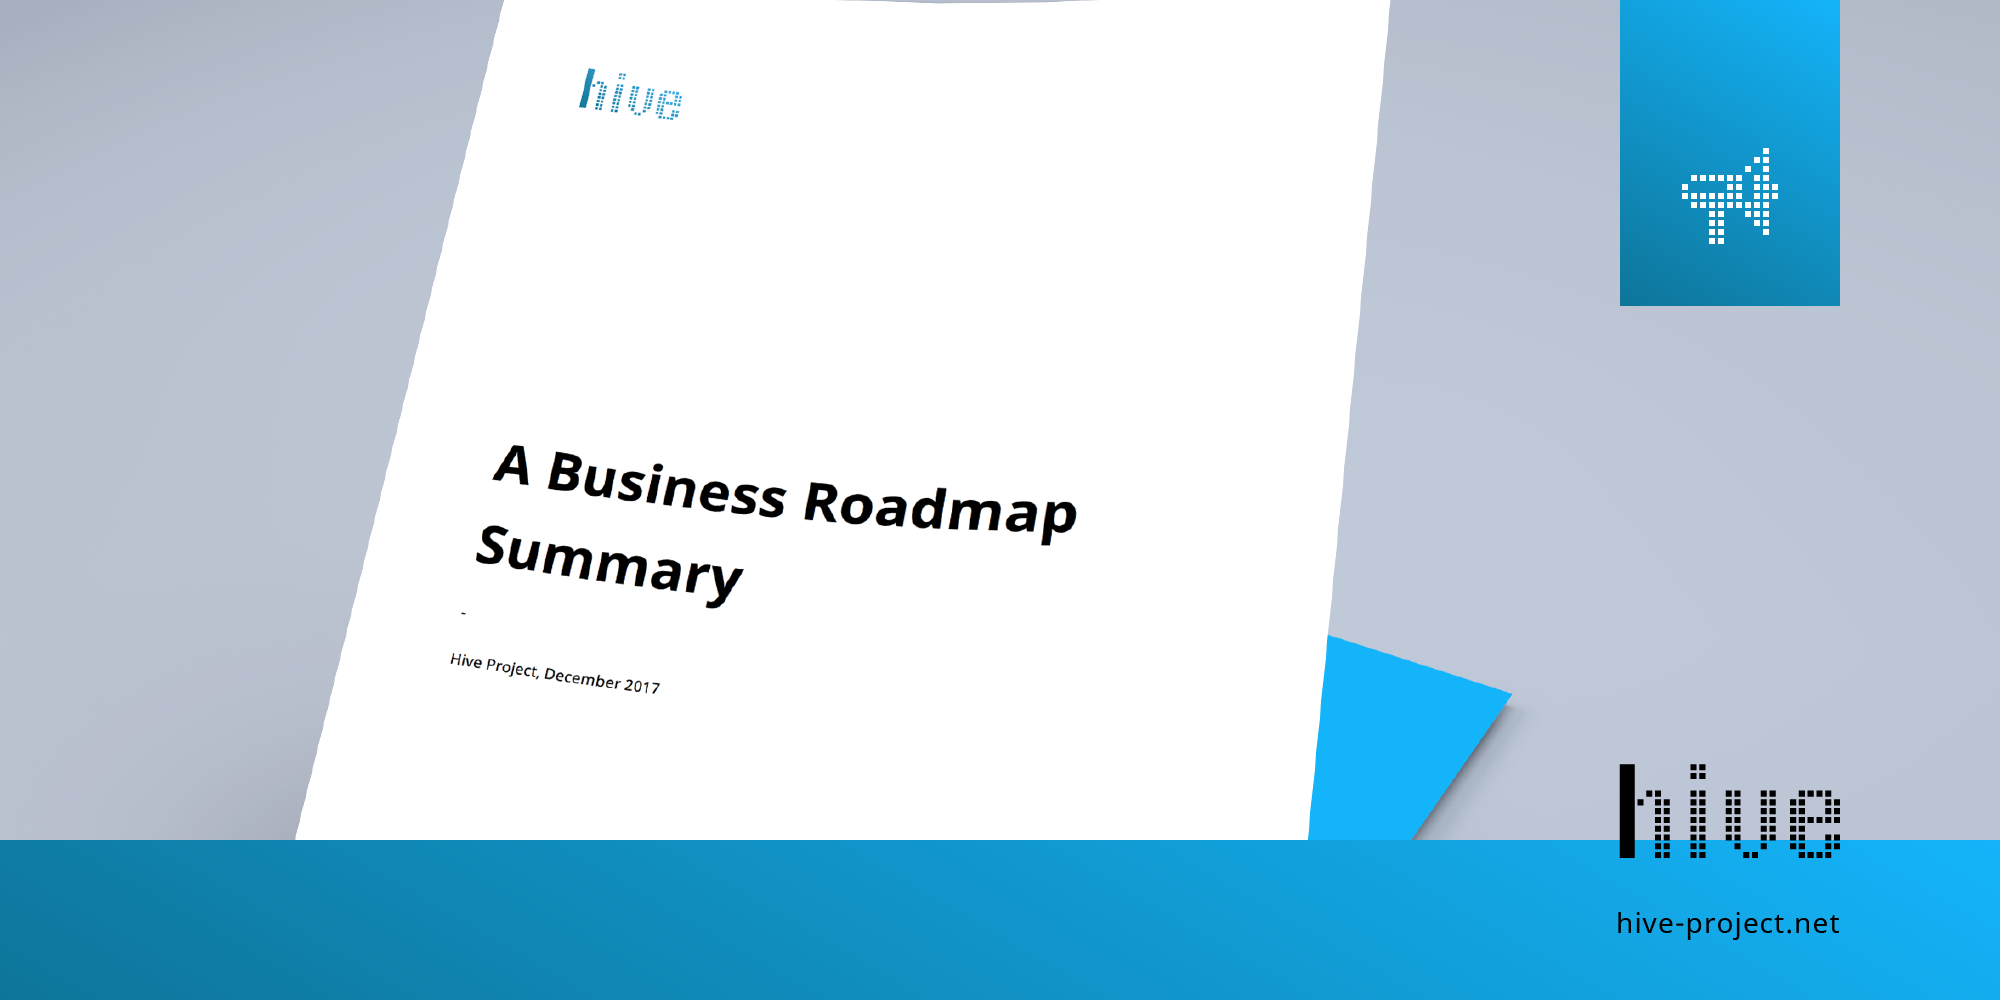 Hvn business roadmap summary a blueprint for our long term success hvn business roadmap summary a blueprint for our long term success malvernweather